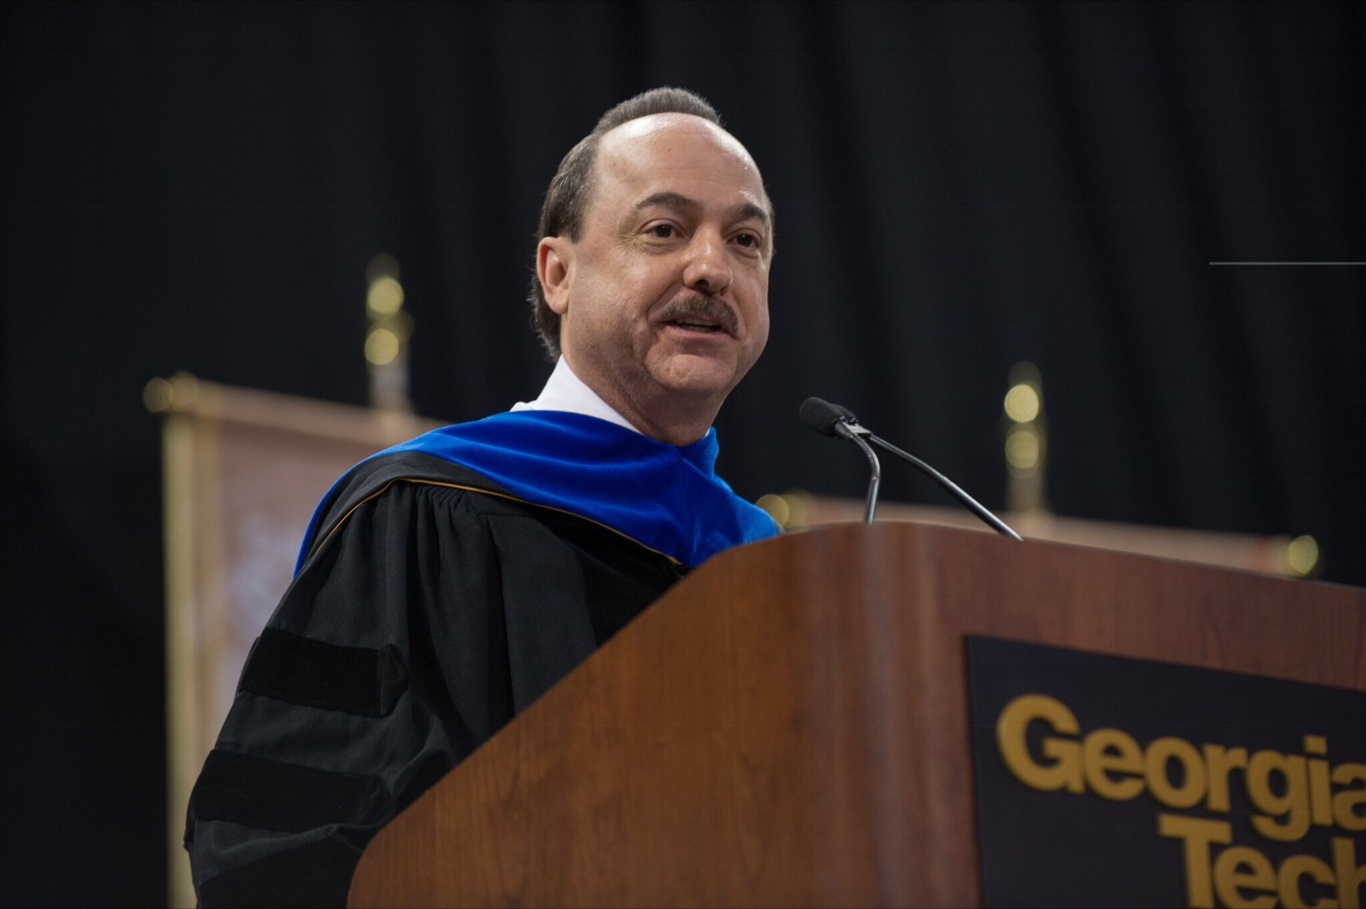 GA Tech Commencement Speech Ralph Da La Vega